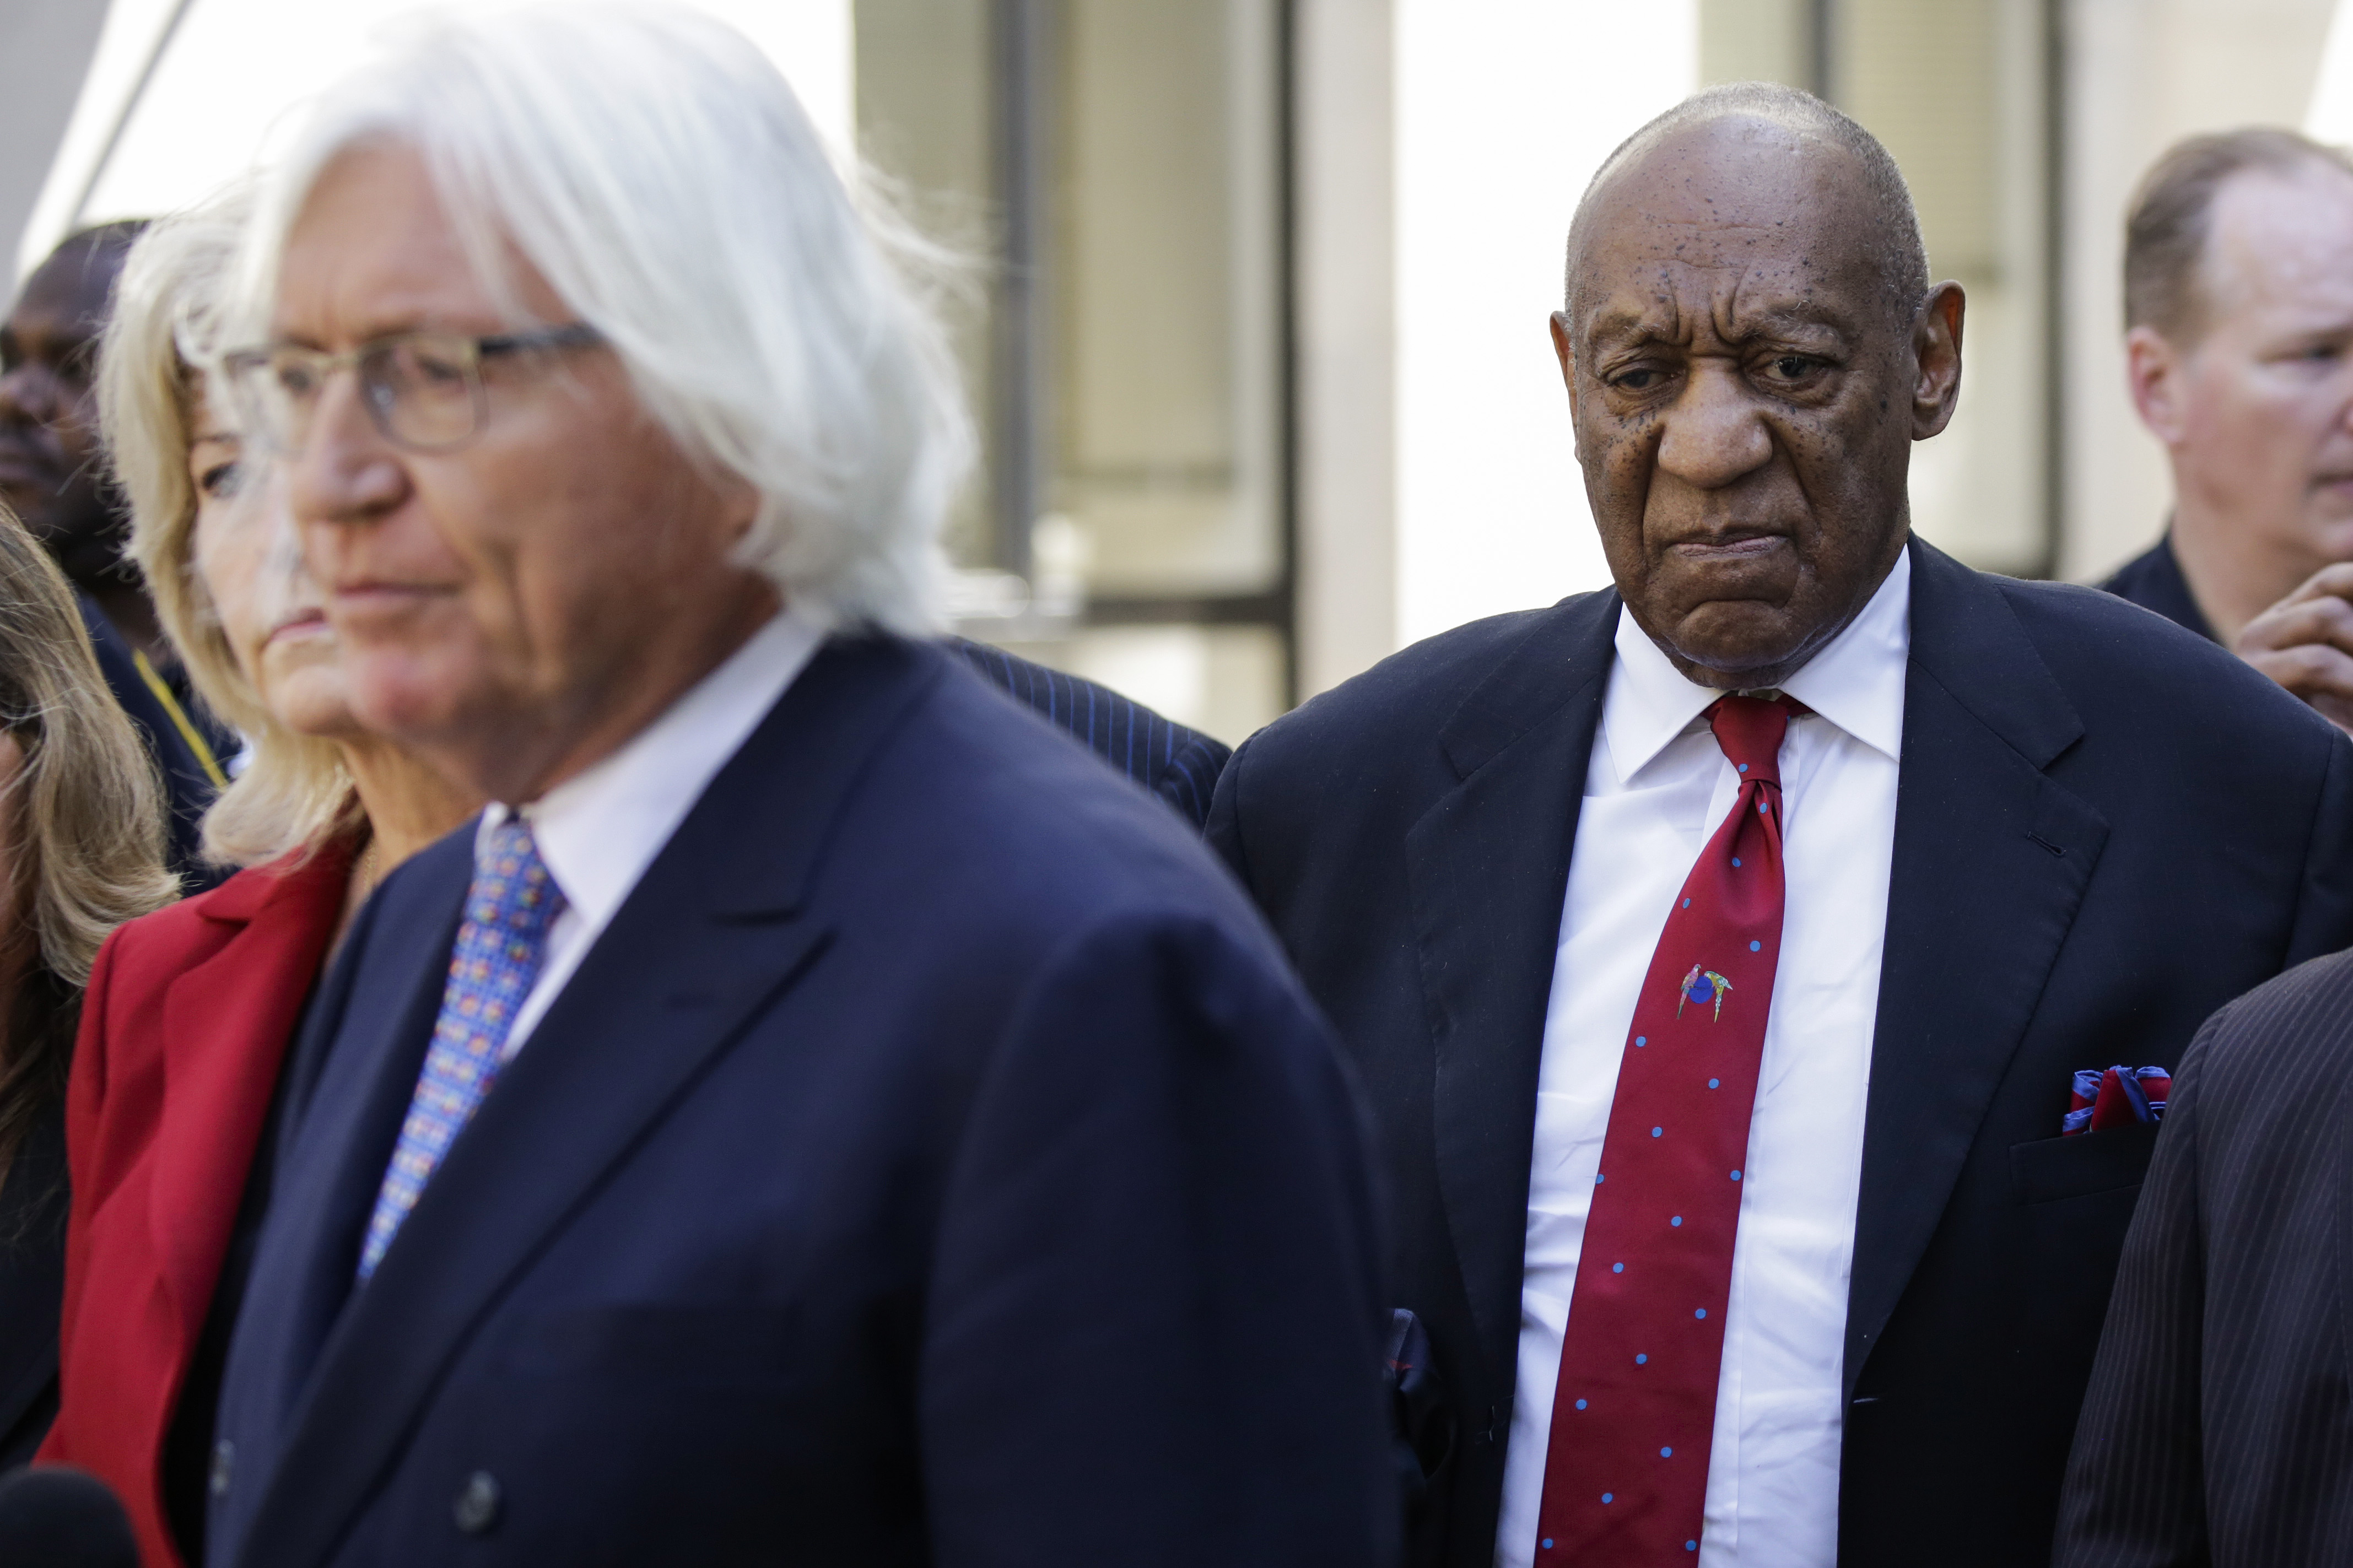 Actor and comedian Bill Cosby comes out of the courthouse after being found guilty in the retrial of his sexual assault case at the Montgomery County Courthouse in Norristown, Pennsylvania on April 26, 2018.